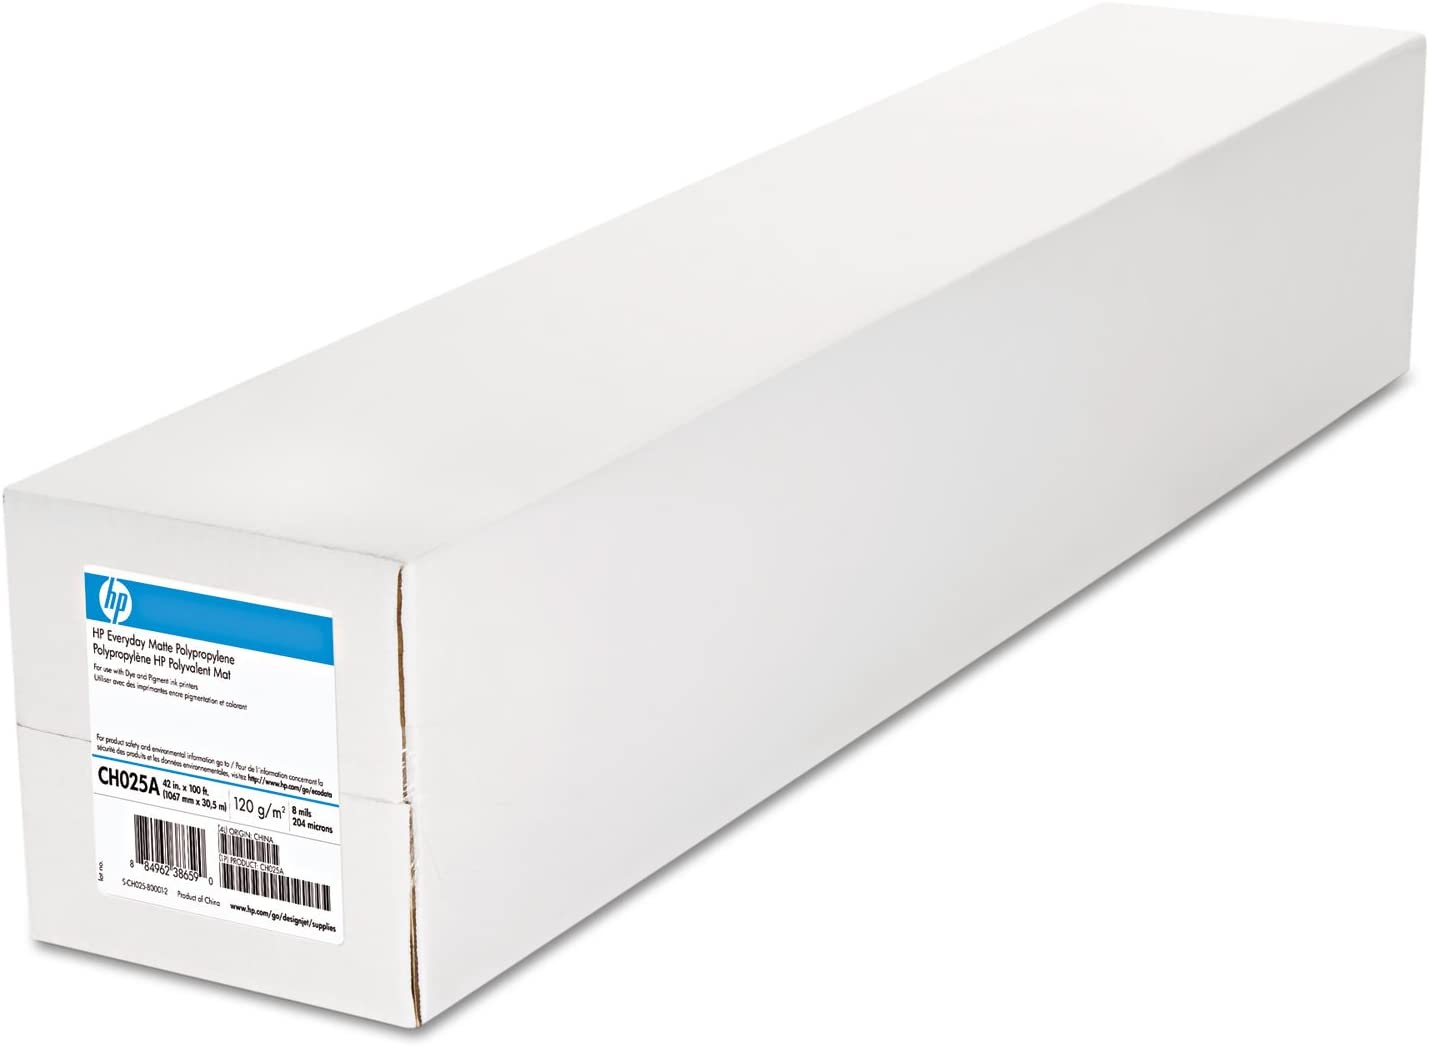 HP CH025A Everyday Matte Polypropylene Film, 8 mil, 2-Inch Core, 42-Inch x 100 ft, White, 2 Rolls